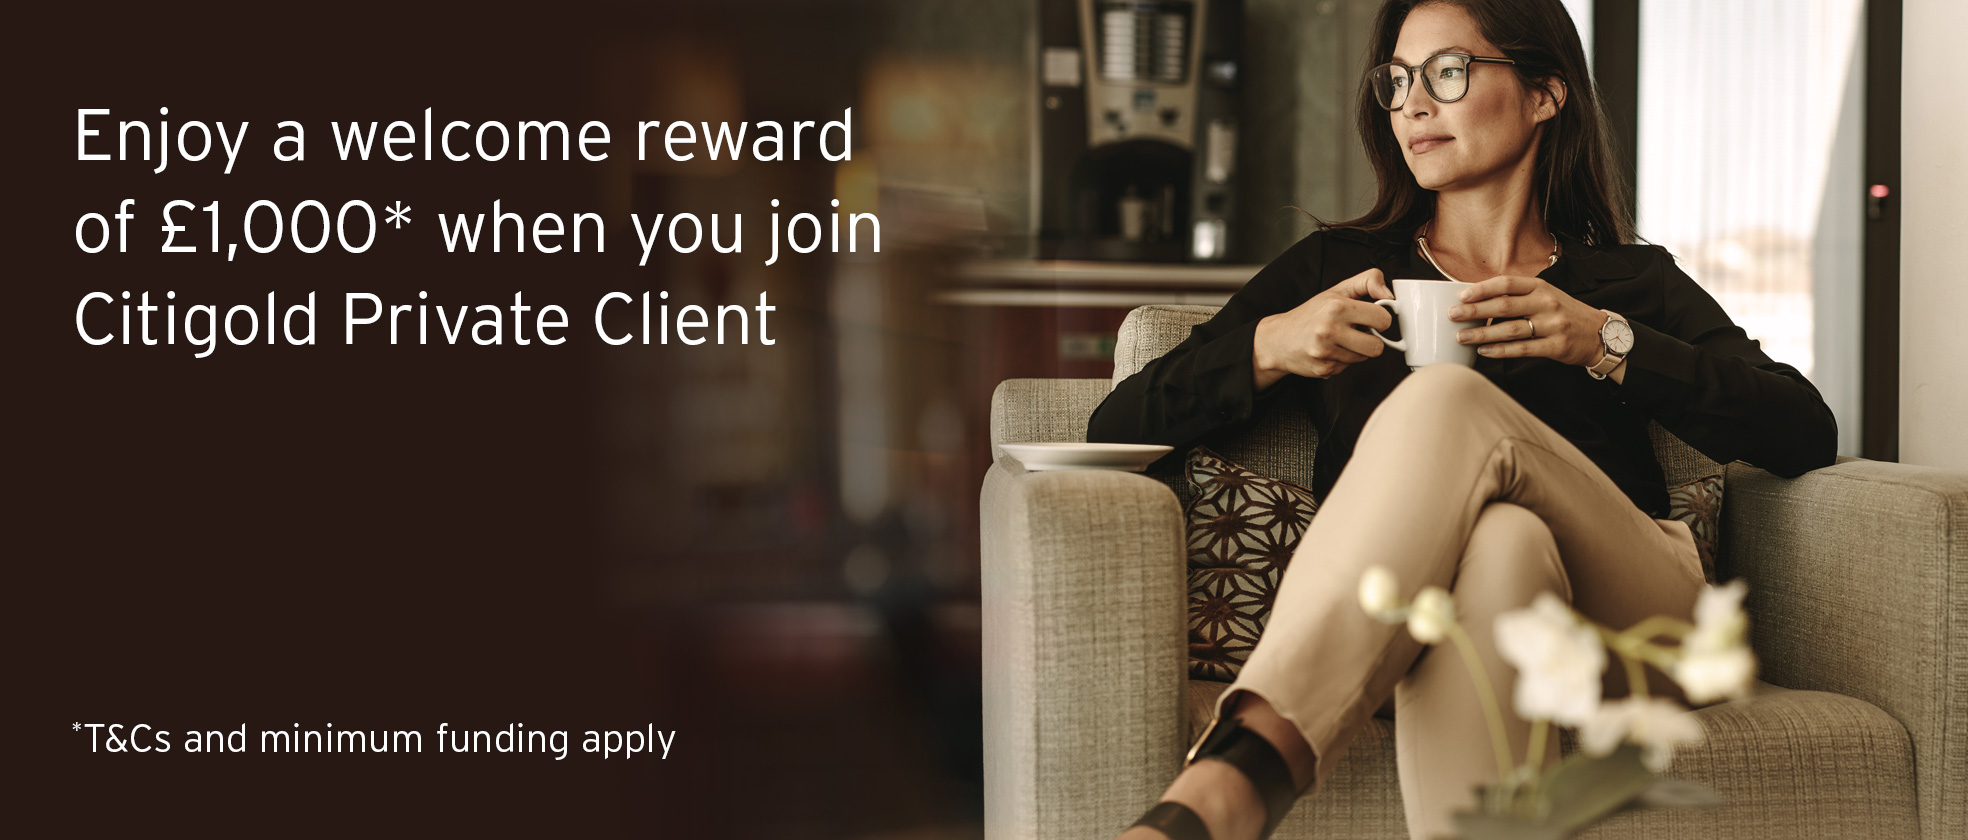 Enjoy a welcome reward of £1,000* when you join Citigold Private Client